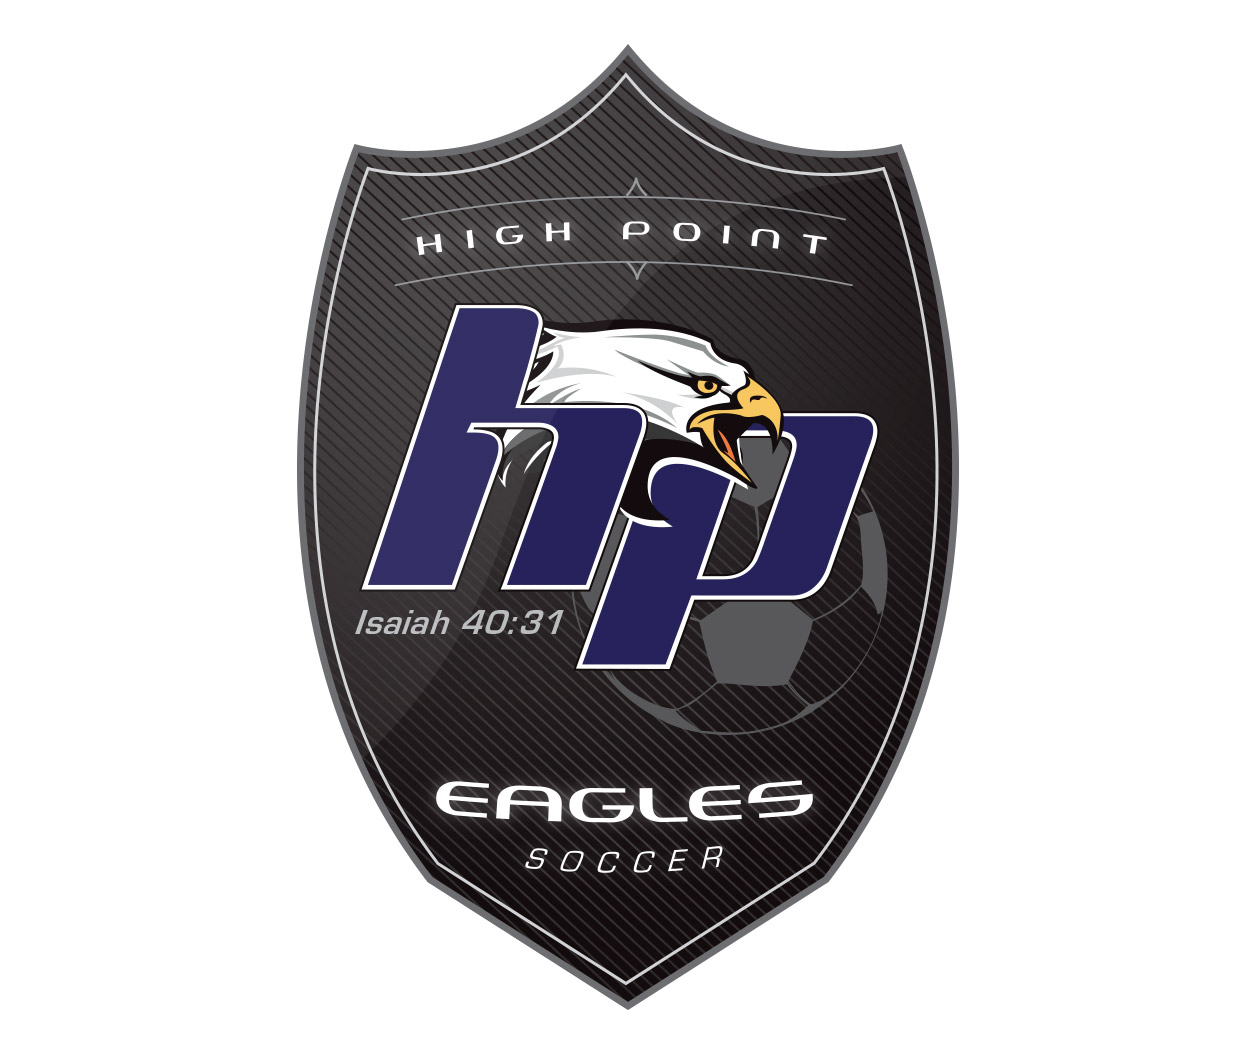 custom soccer logo design for the hp eagles soccer by jordan fretz design